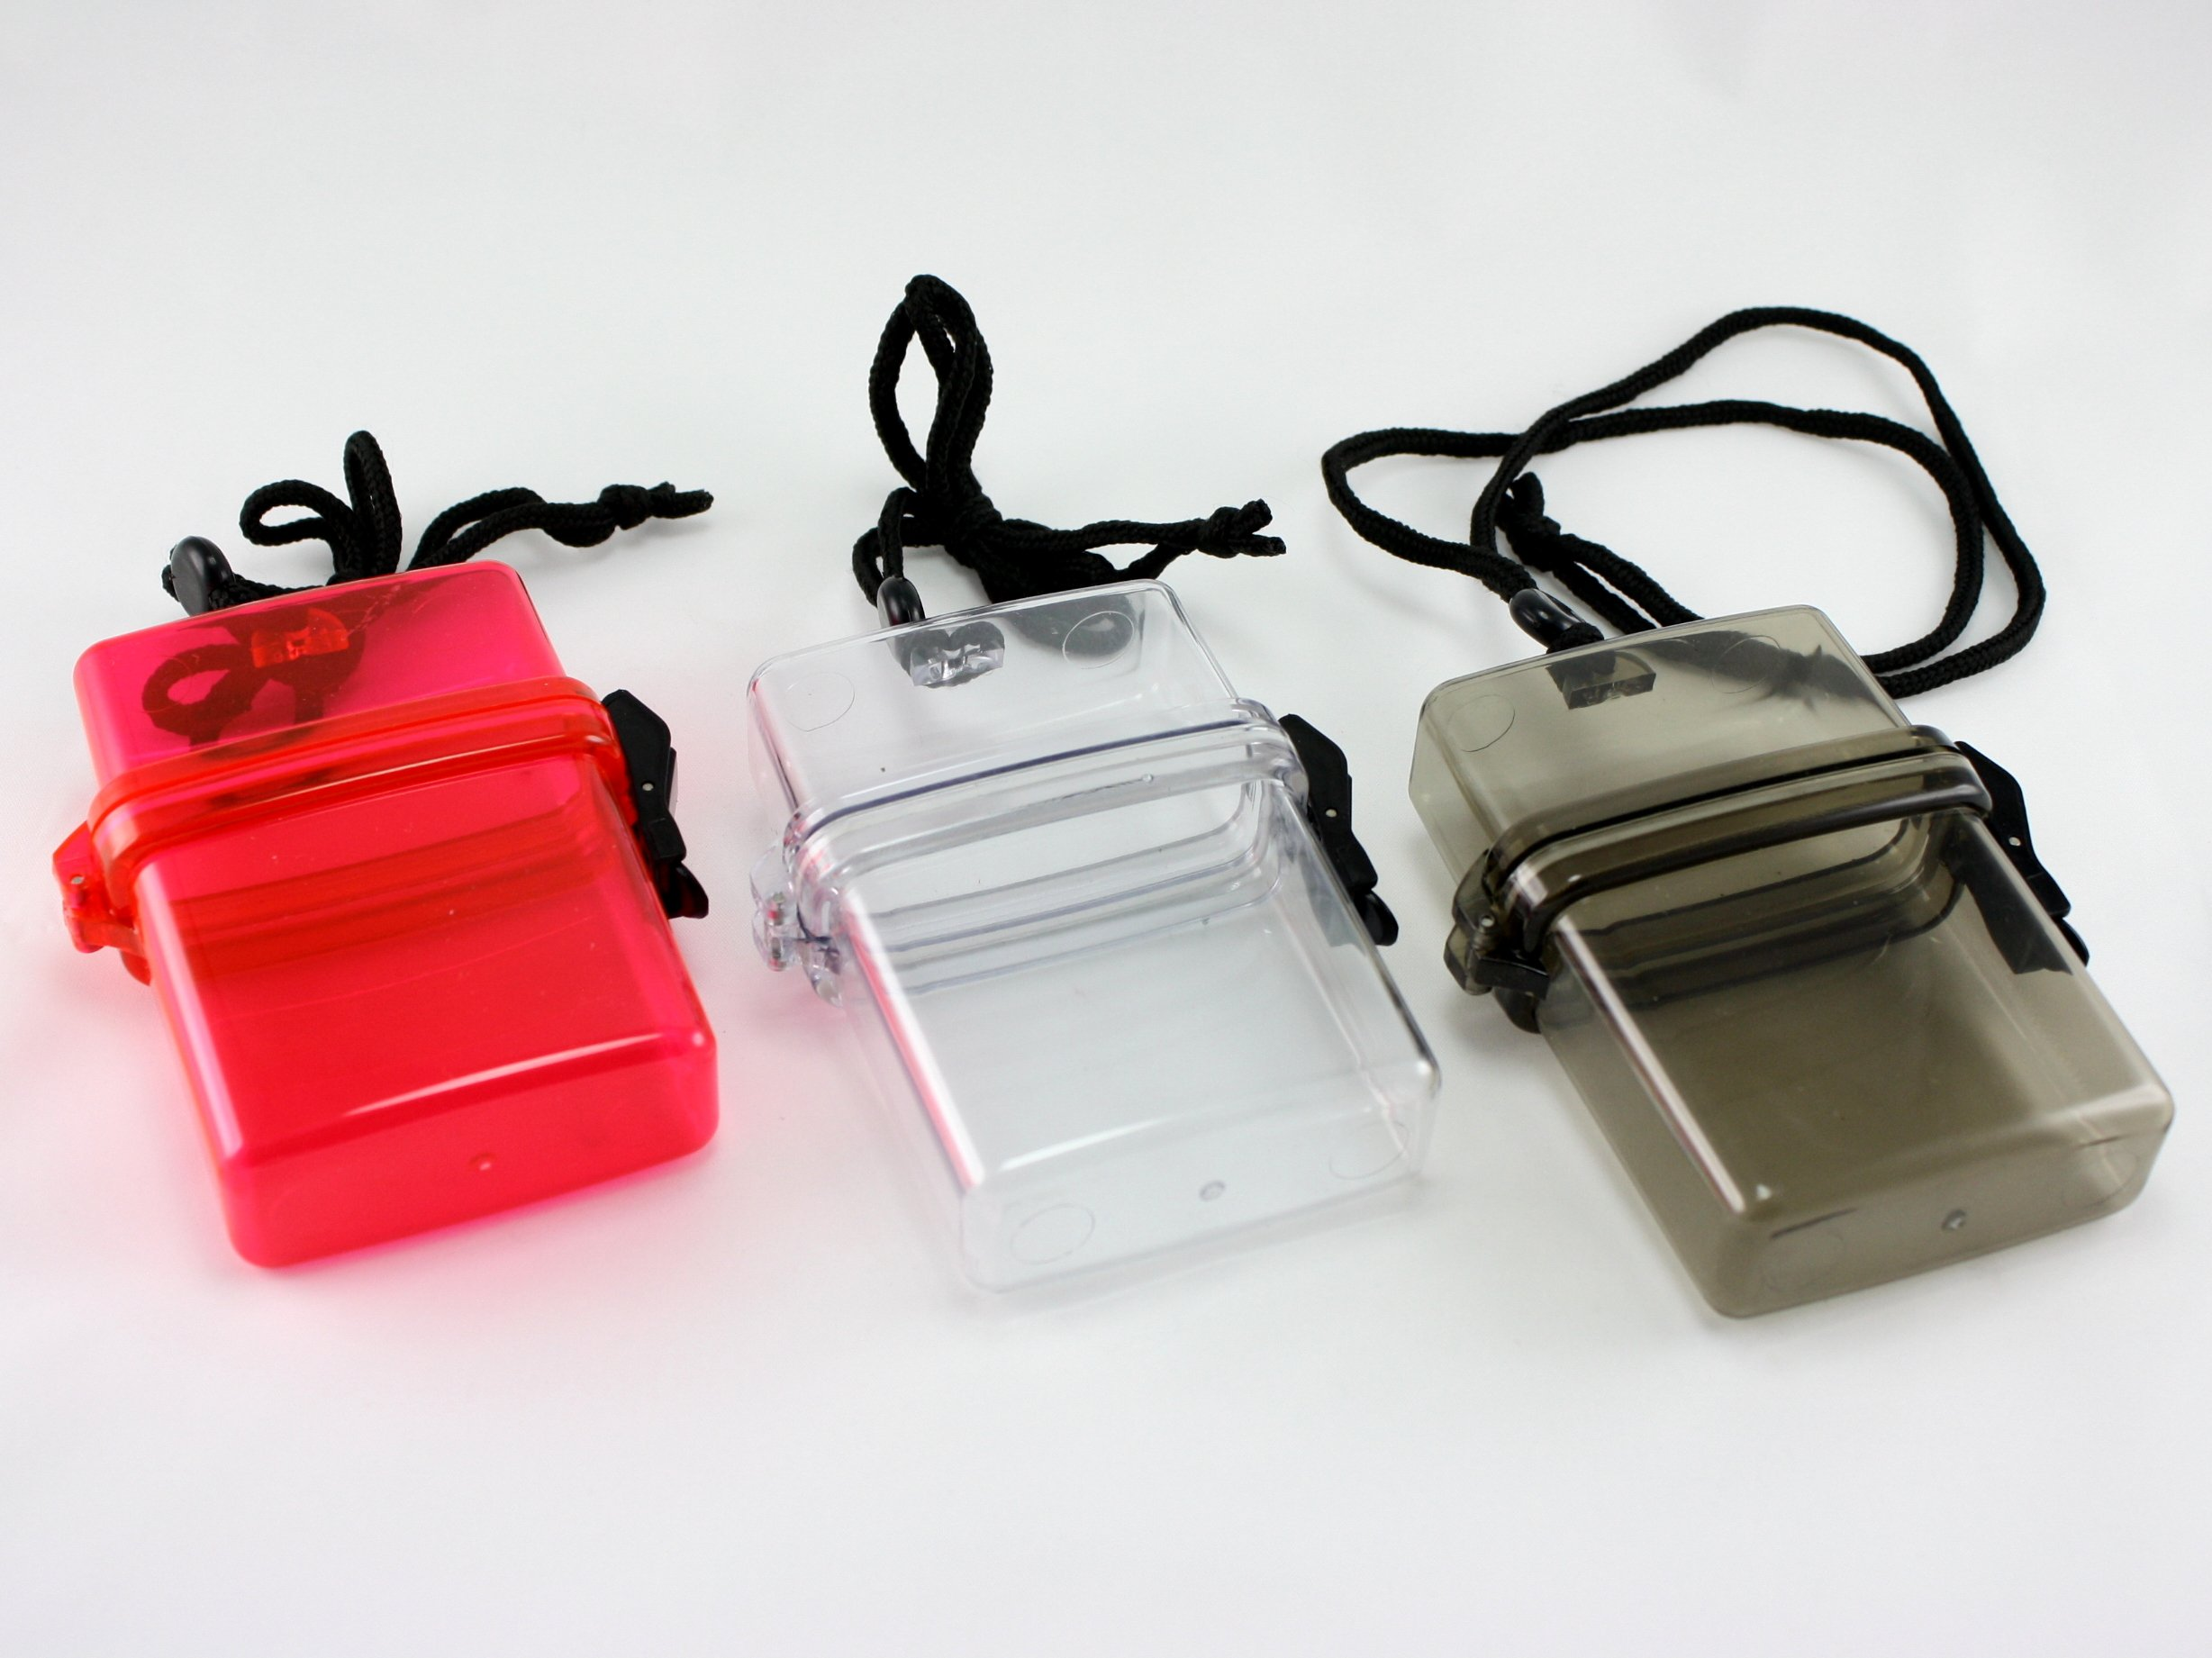 Skyway Waterproof Cigarette Case Pack Holder Dry Box - Set of 3 - Black Clear Red